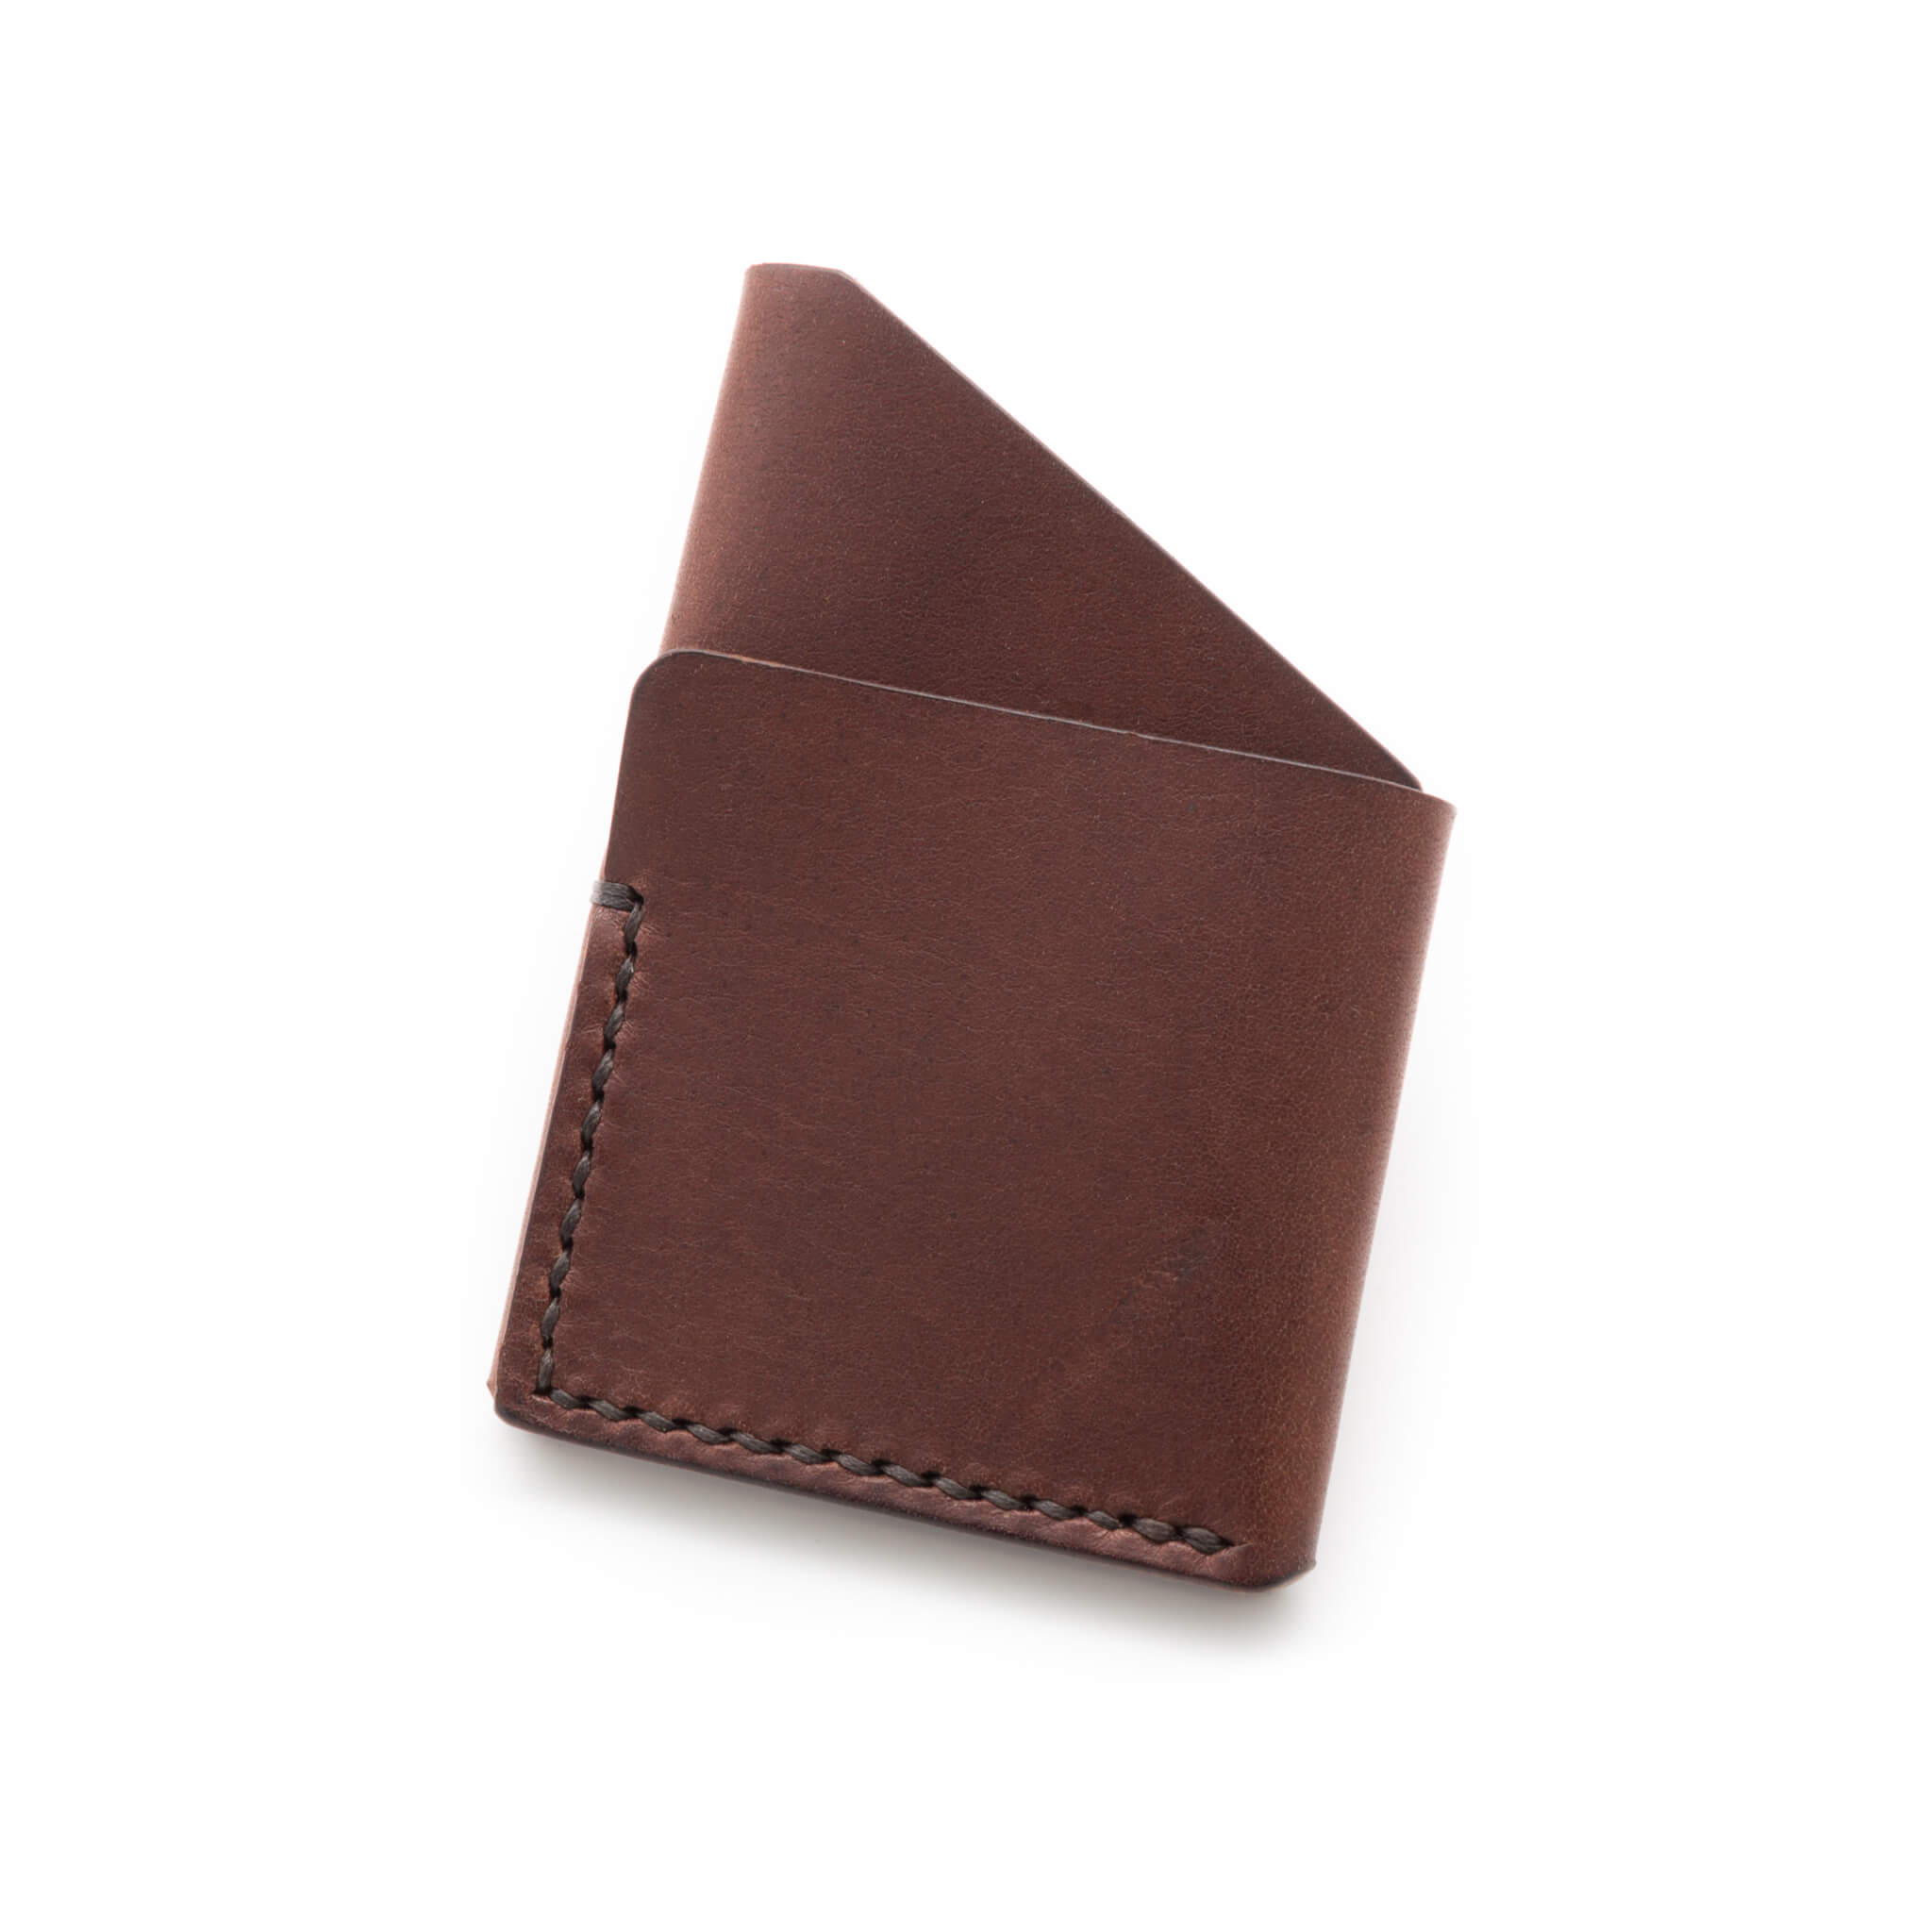 Leather card holder in Walnut Brown Leather handmade by Colville Leather